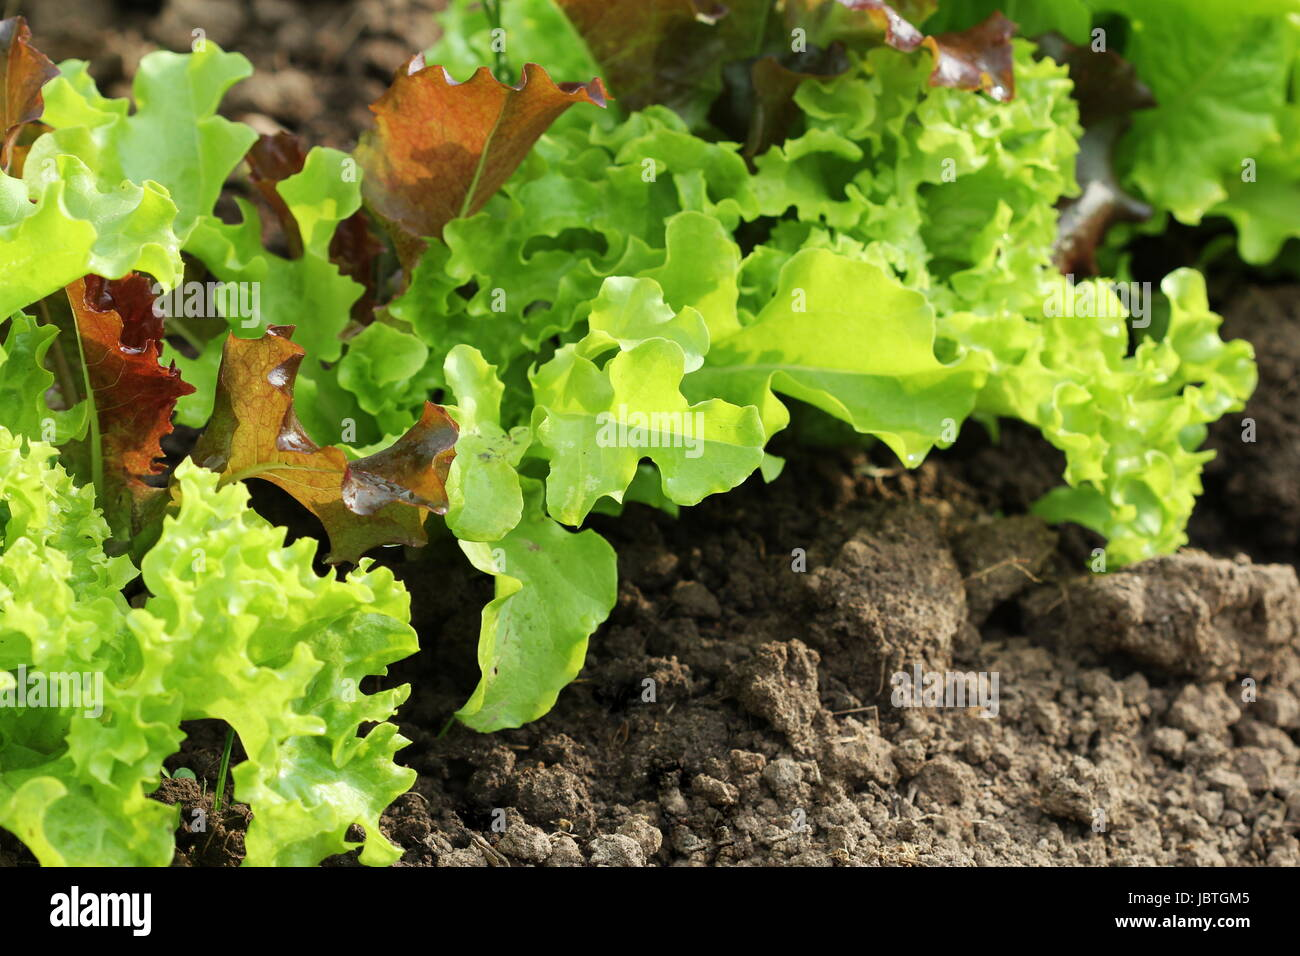 Fresh green aand red curly lettuce growing in bed. Ssalad background. Top view - Stock Image